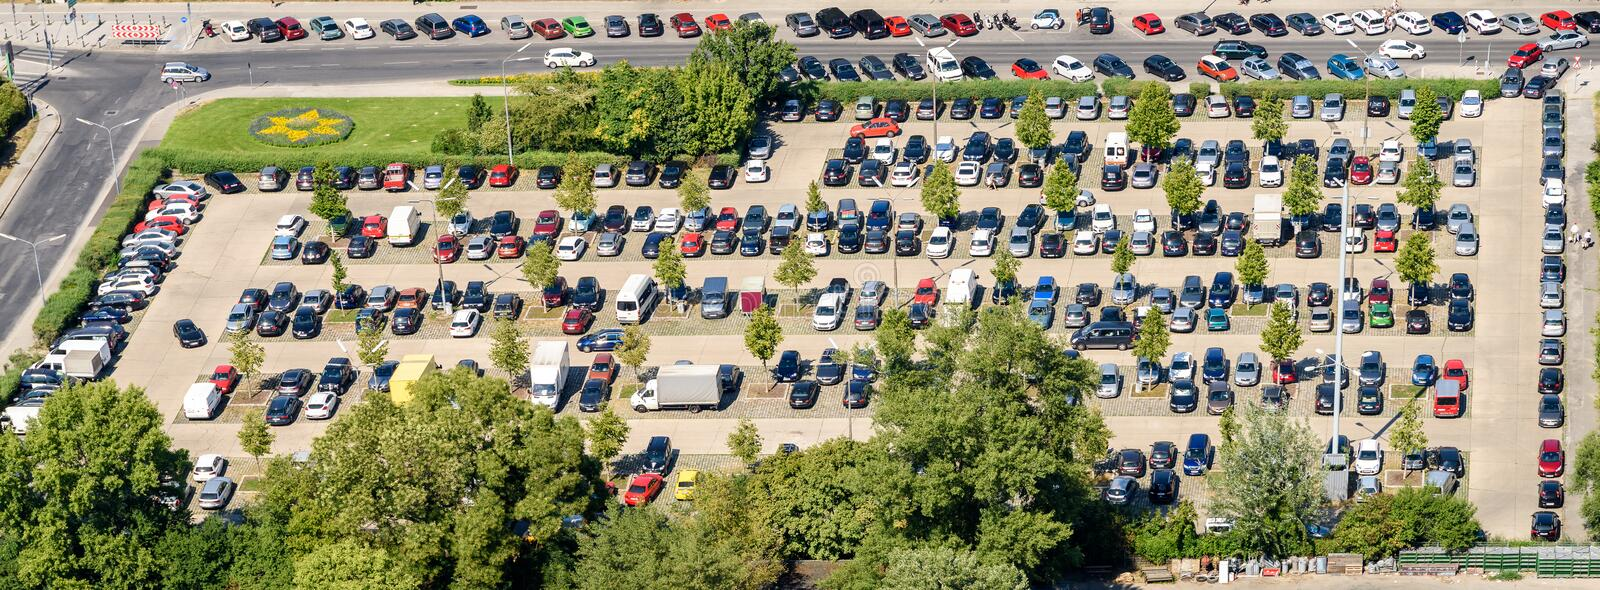 Cars Parking In Car Parking Lot stock photography